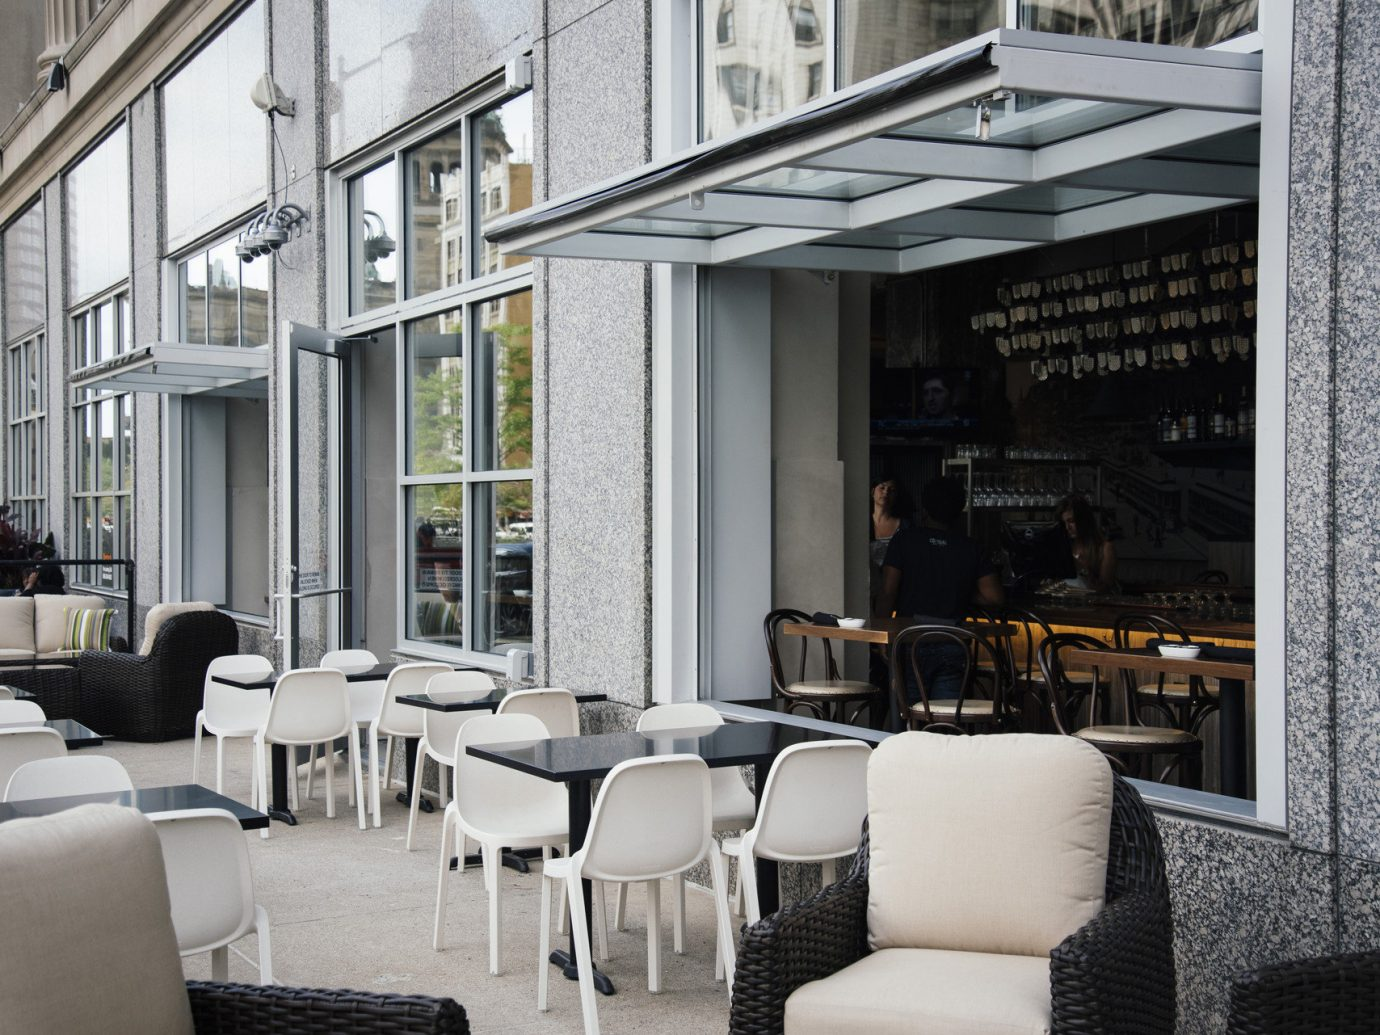 City Dining Exterior Food + Drink Hip outdoor dining outdoor lounge Patio restaurant tables Terrace trendy room chair indoor Living Architecture interior design home furniture living room Design condominium Lobby window covering hotel area decorated